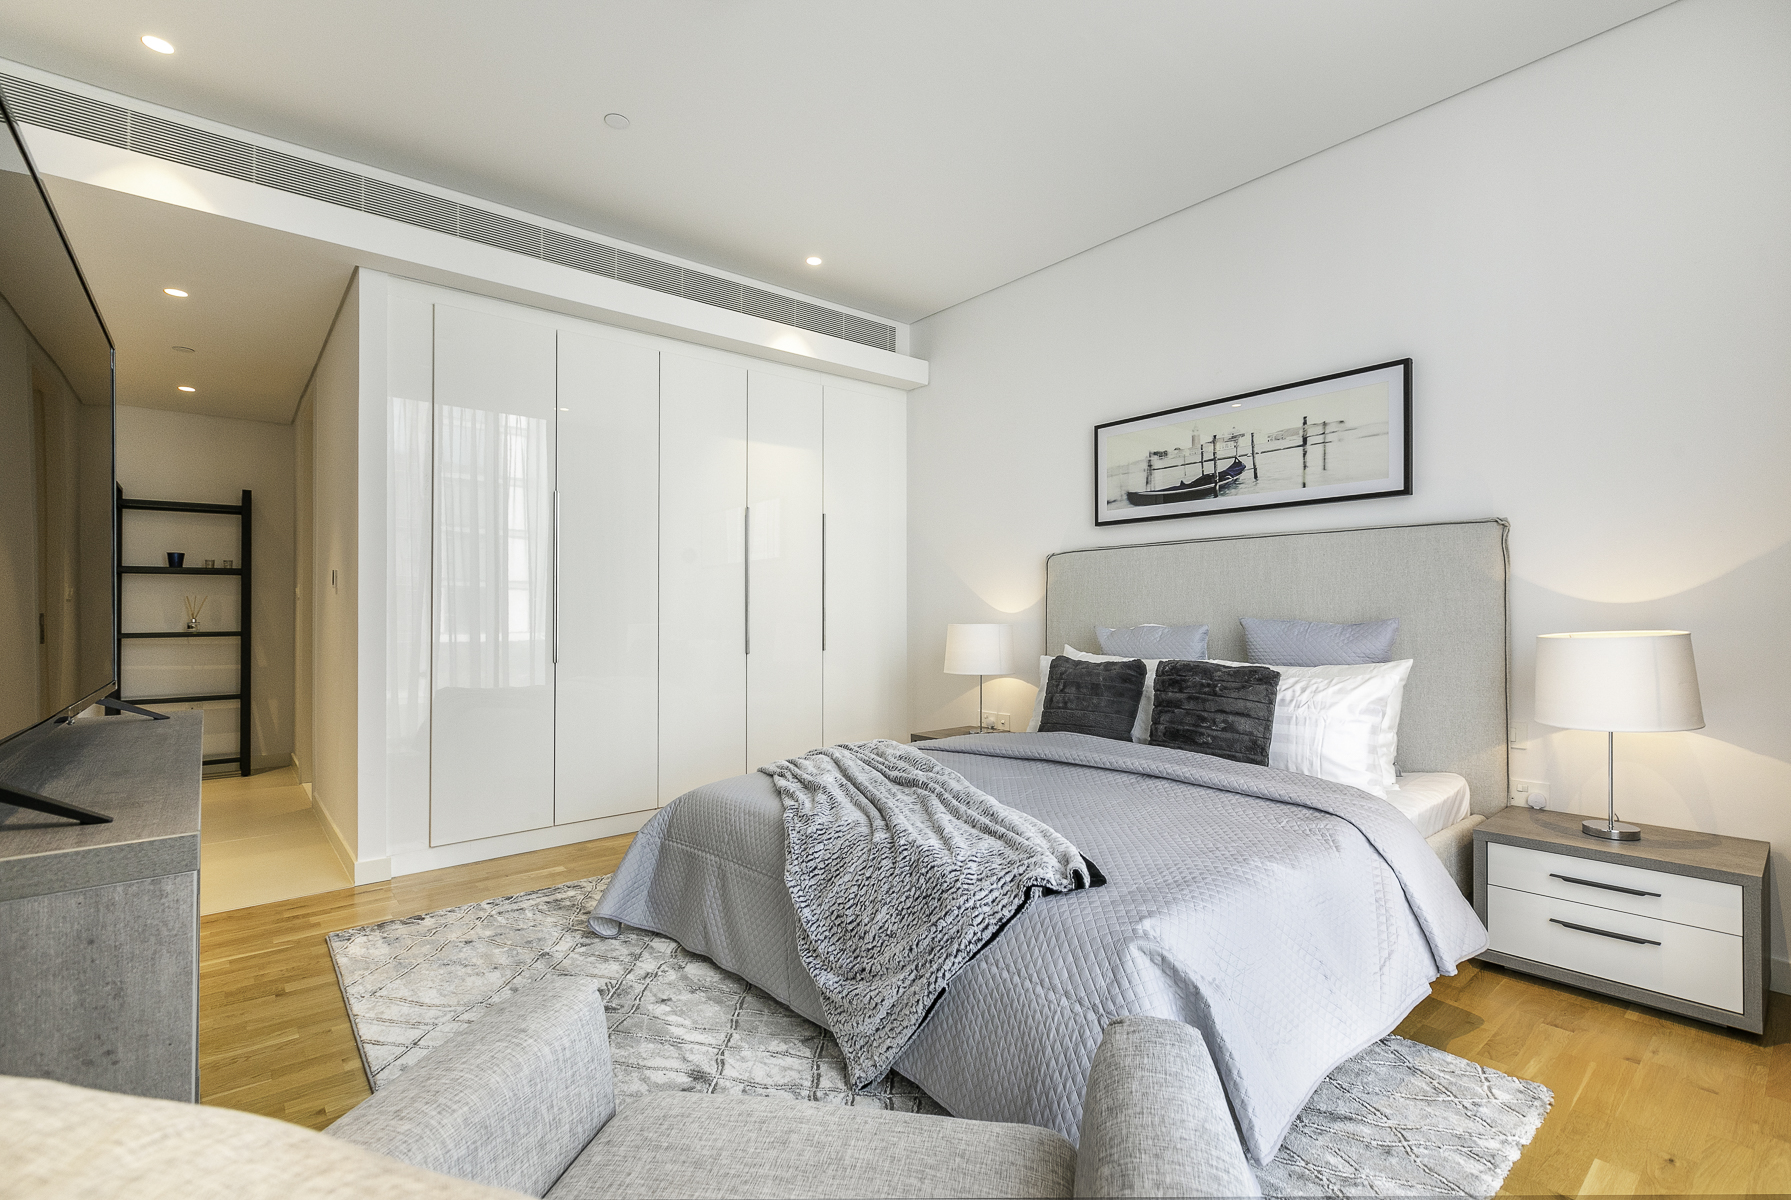 Apartment Experience the Bluewaters lifestyle On This All New 1 Bed in Building 5 photo 21298954